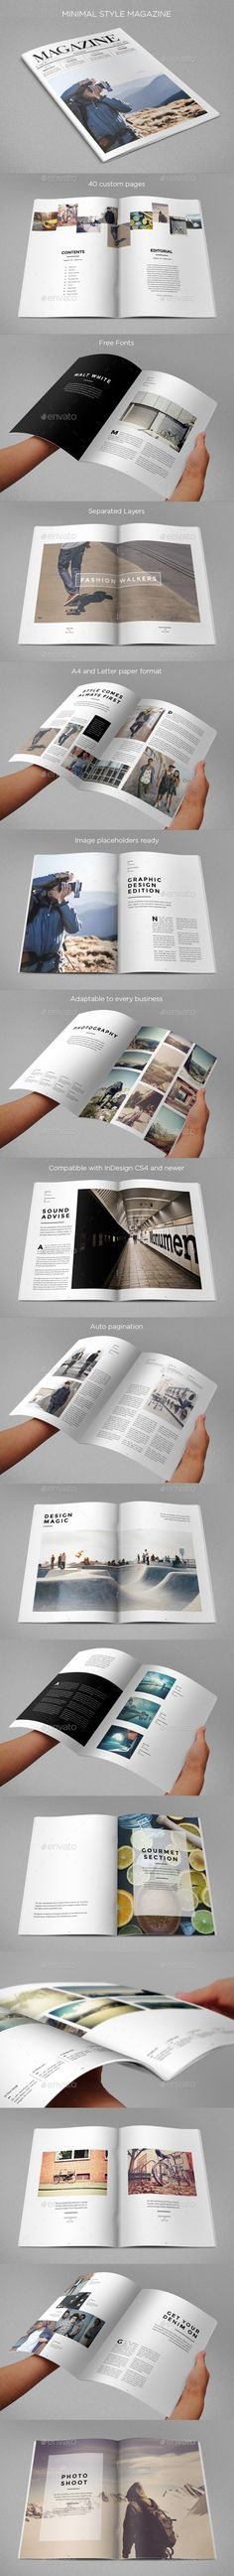 Minimal Style Magazine by AbraDesign MINIMAL STYLE MAGAZINECool magazine with a minimal and stylish look. Available in A4 and Letter paper formats. It contains 40 pag